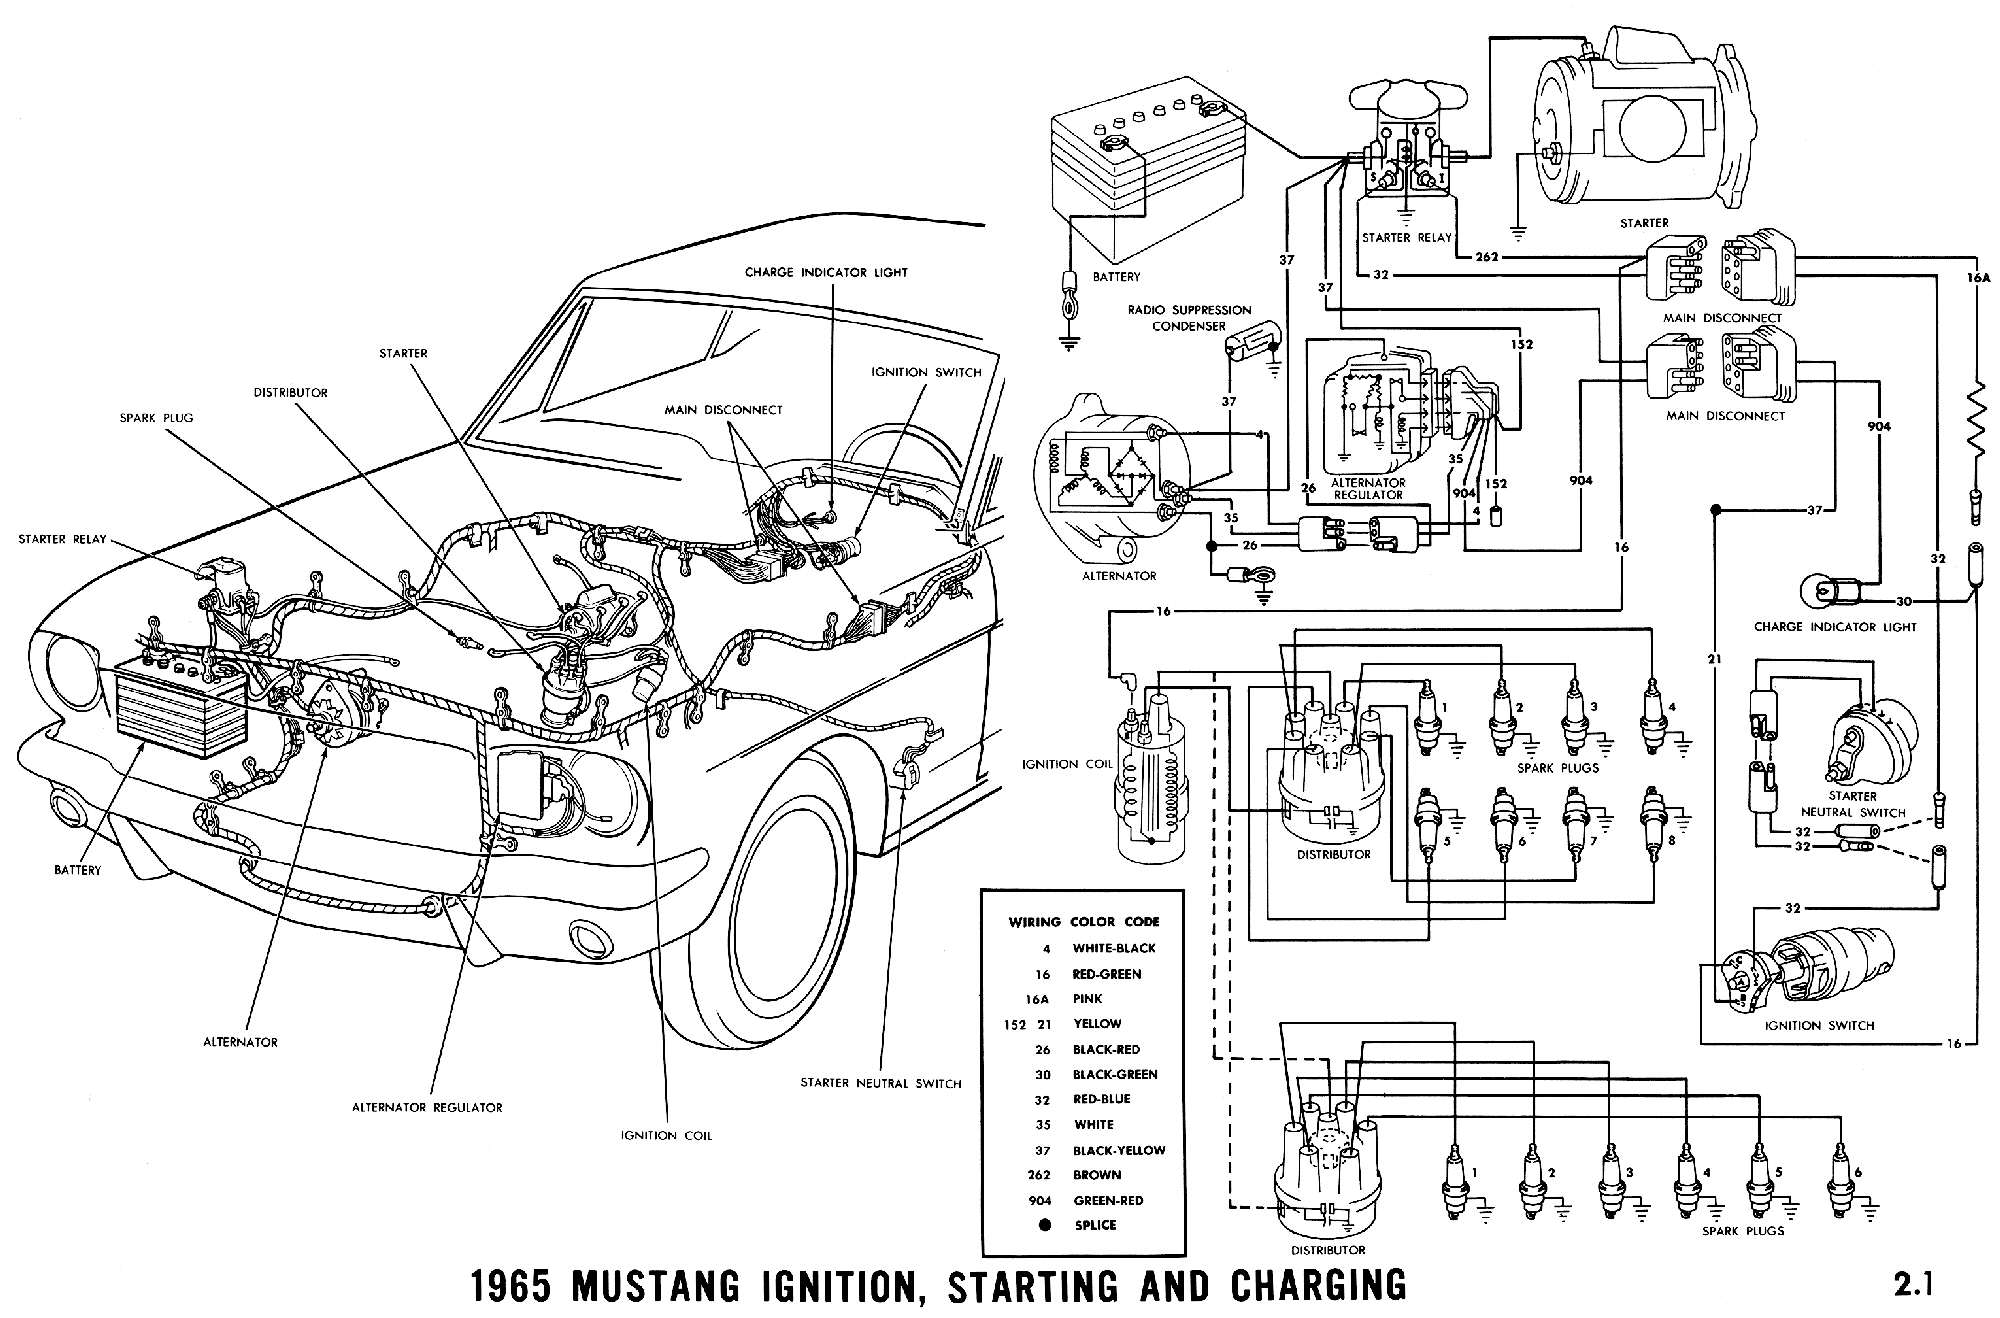 Groovy 1967 Mustang Wiring Harness Wiring Diagram Wiring Digital Resources Remcakbiperorg